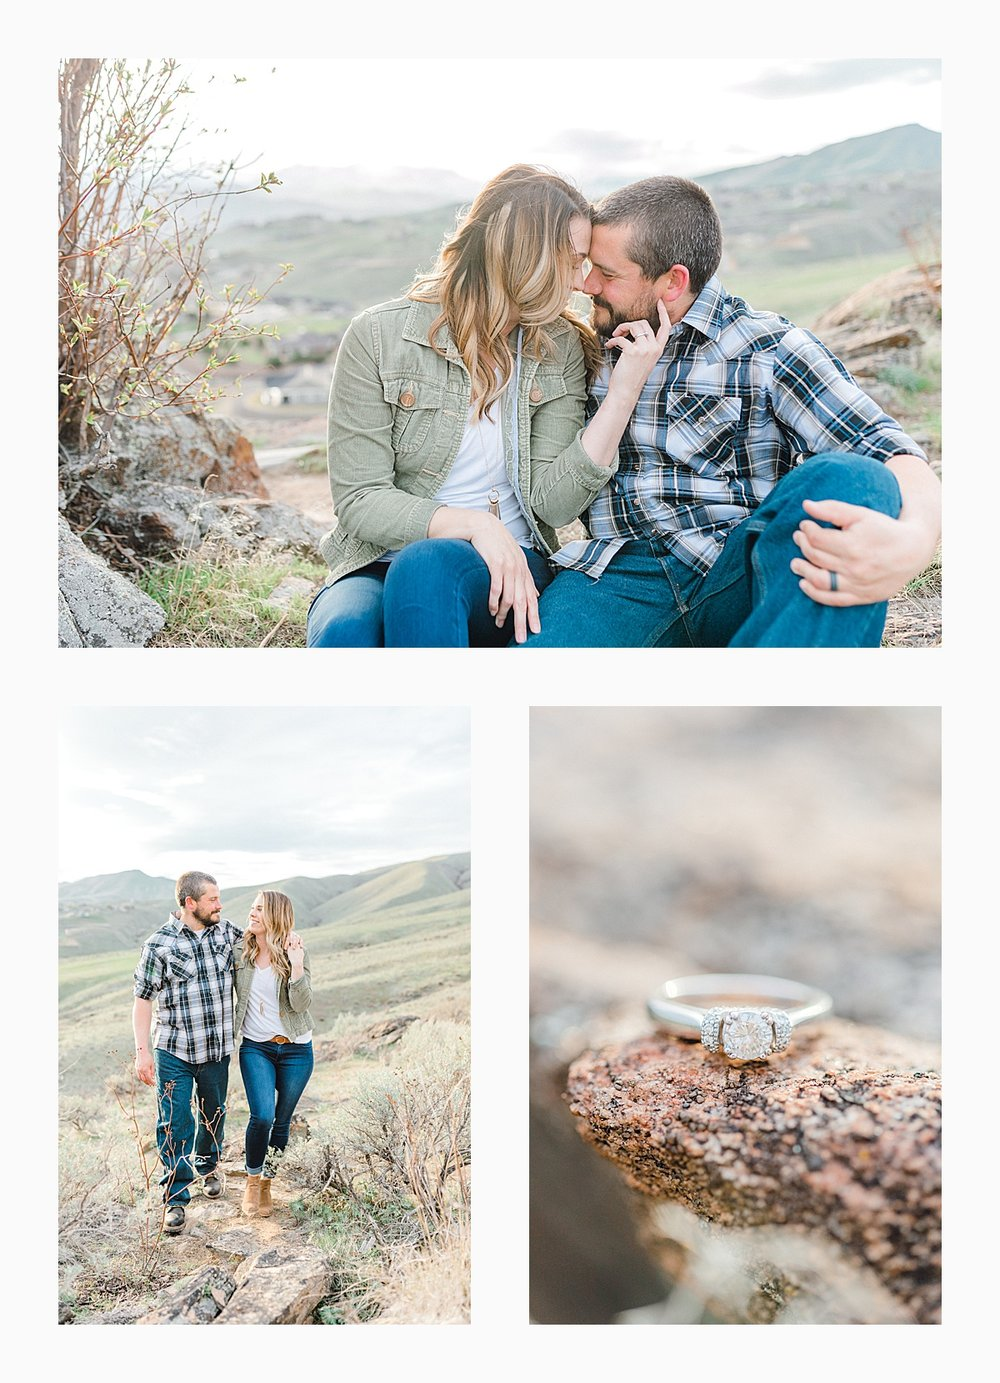 Pacific Northwest Engagement Session in the Sagebrush with Emma Rose Company who is a light and airy wedding photographer based in Seattle, Washington_0037.jpg